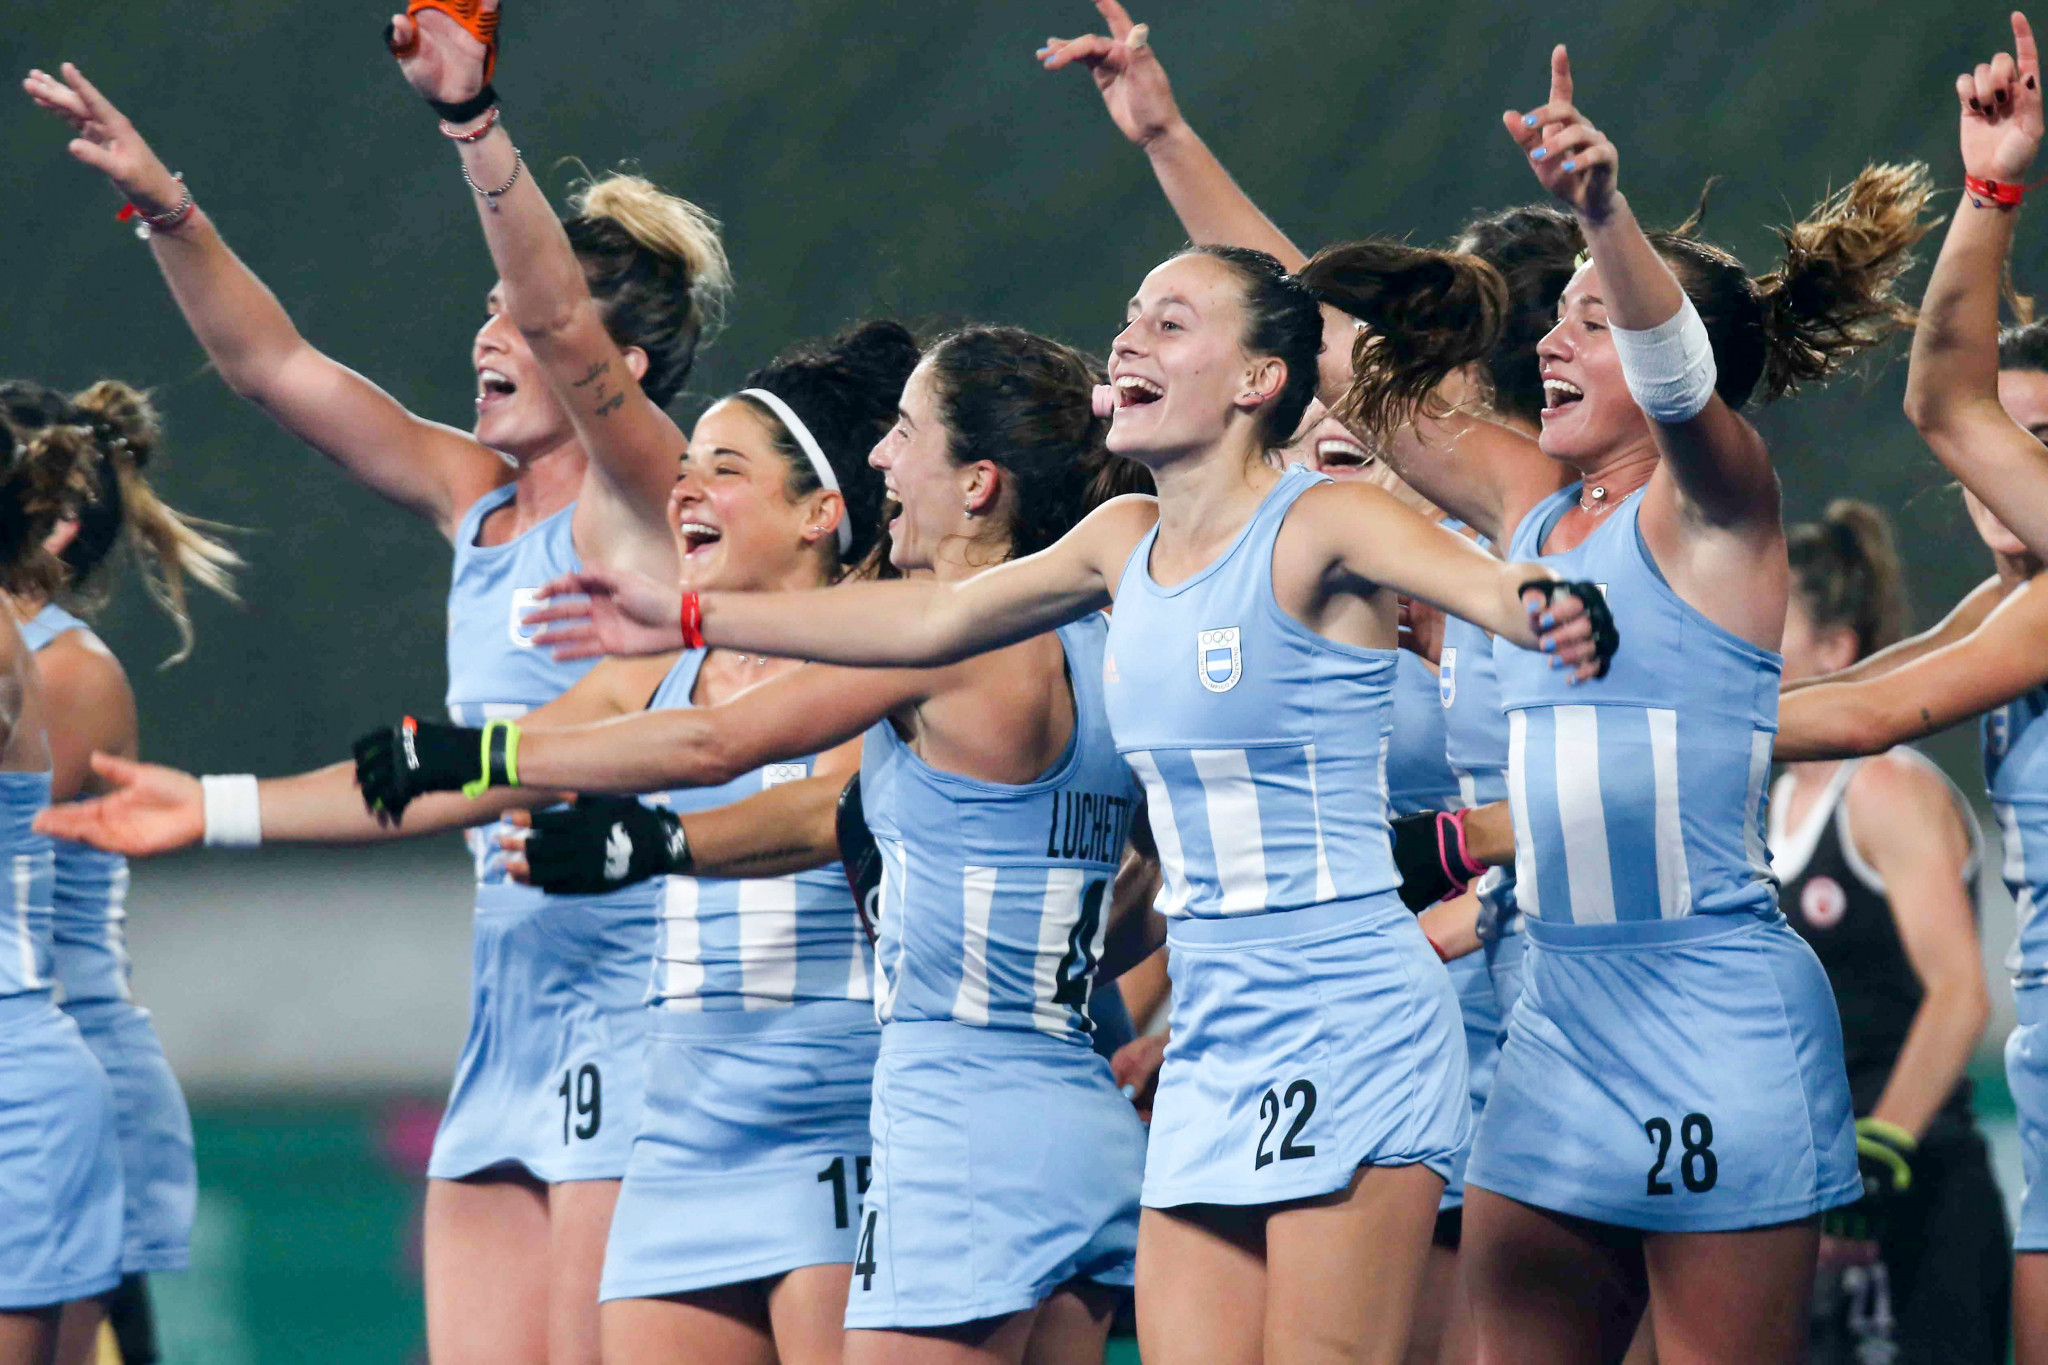 Argentina earn hockey Pan American Games gold to book place at Tokyo 2020